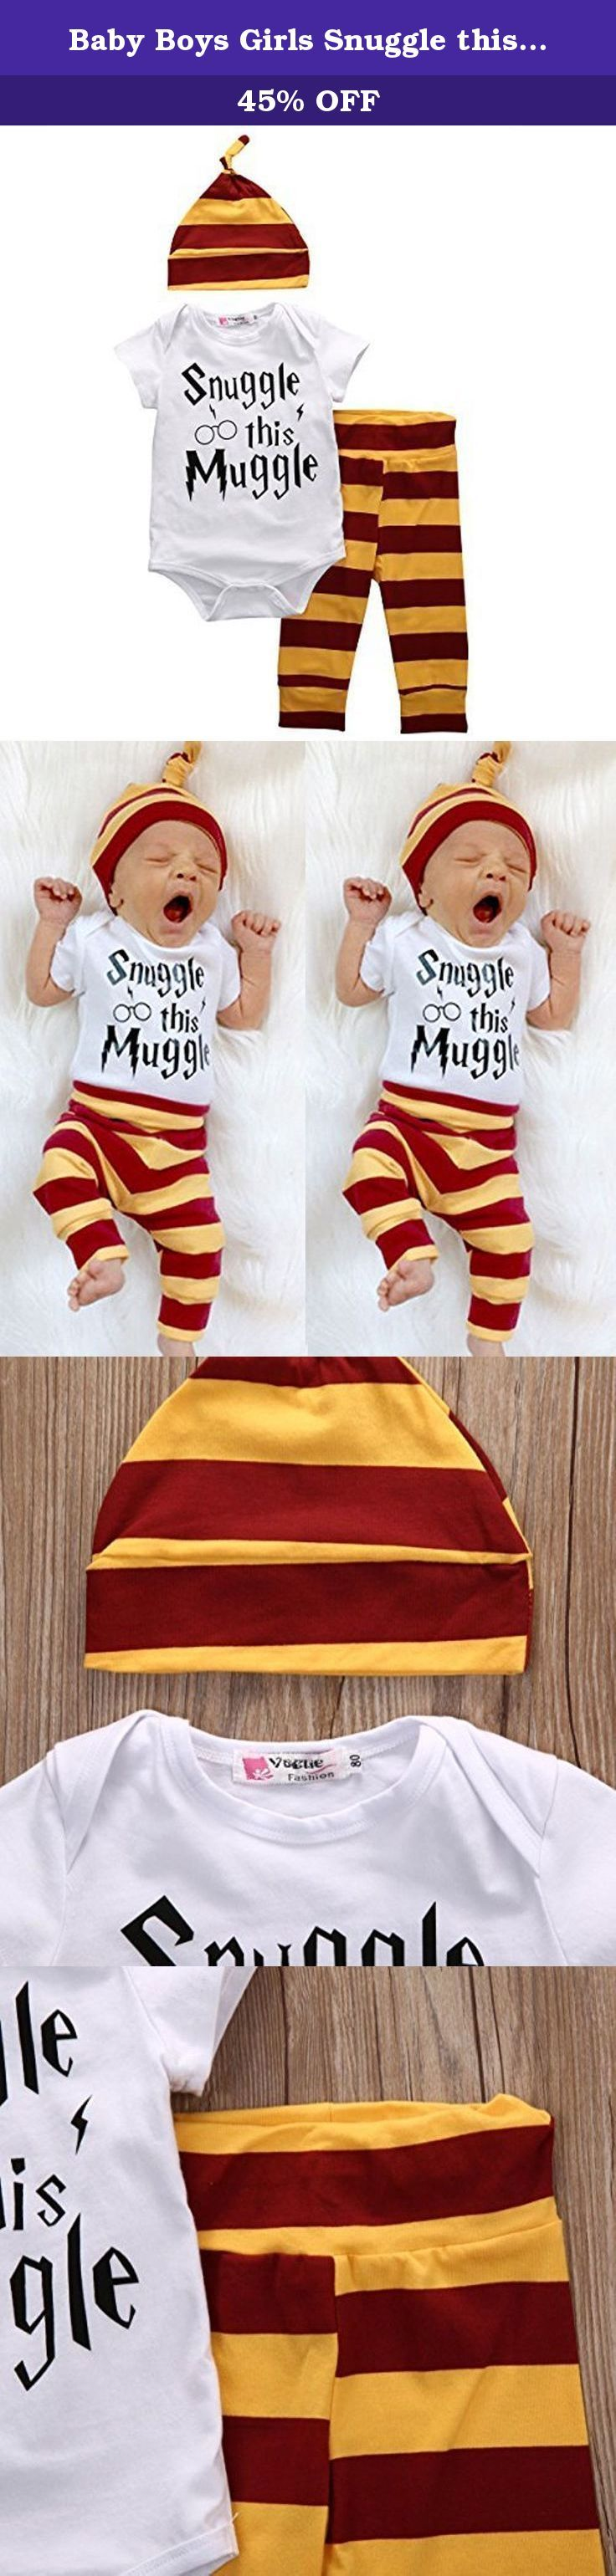 """Baby Boys Girls Snuggle this Muggle Short Sleeve Bodysuit and Pants Outfit with Hat (80 (6-9M), White+Yellow). Size information: 70 (0-6M): Bodysuit length 39cm/15.2"""", Chest 50cm/19.5"""", Pants Length 39cm/15.2"""" 80 (6-9M): Bodysuit length 42cm/16.4"""", Chest 52cm/20.3"""", Pants Length 42cm/16.4"""" 90 (9-12M): Bodysuit length 45cm/17.5"""", Chest 54cm/21.1"""", Pants Length 45cm/17.5"""" 100 (12-18M): Bodysuit length 48cm/18.7"""", Chest 56cm/21.8"""",Pants Length 48cm/18.7"""" Please allow 1-3cm differs due to…"""